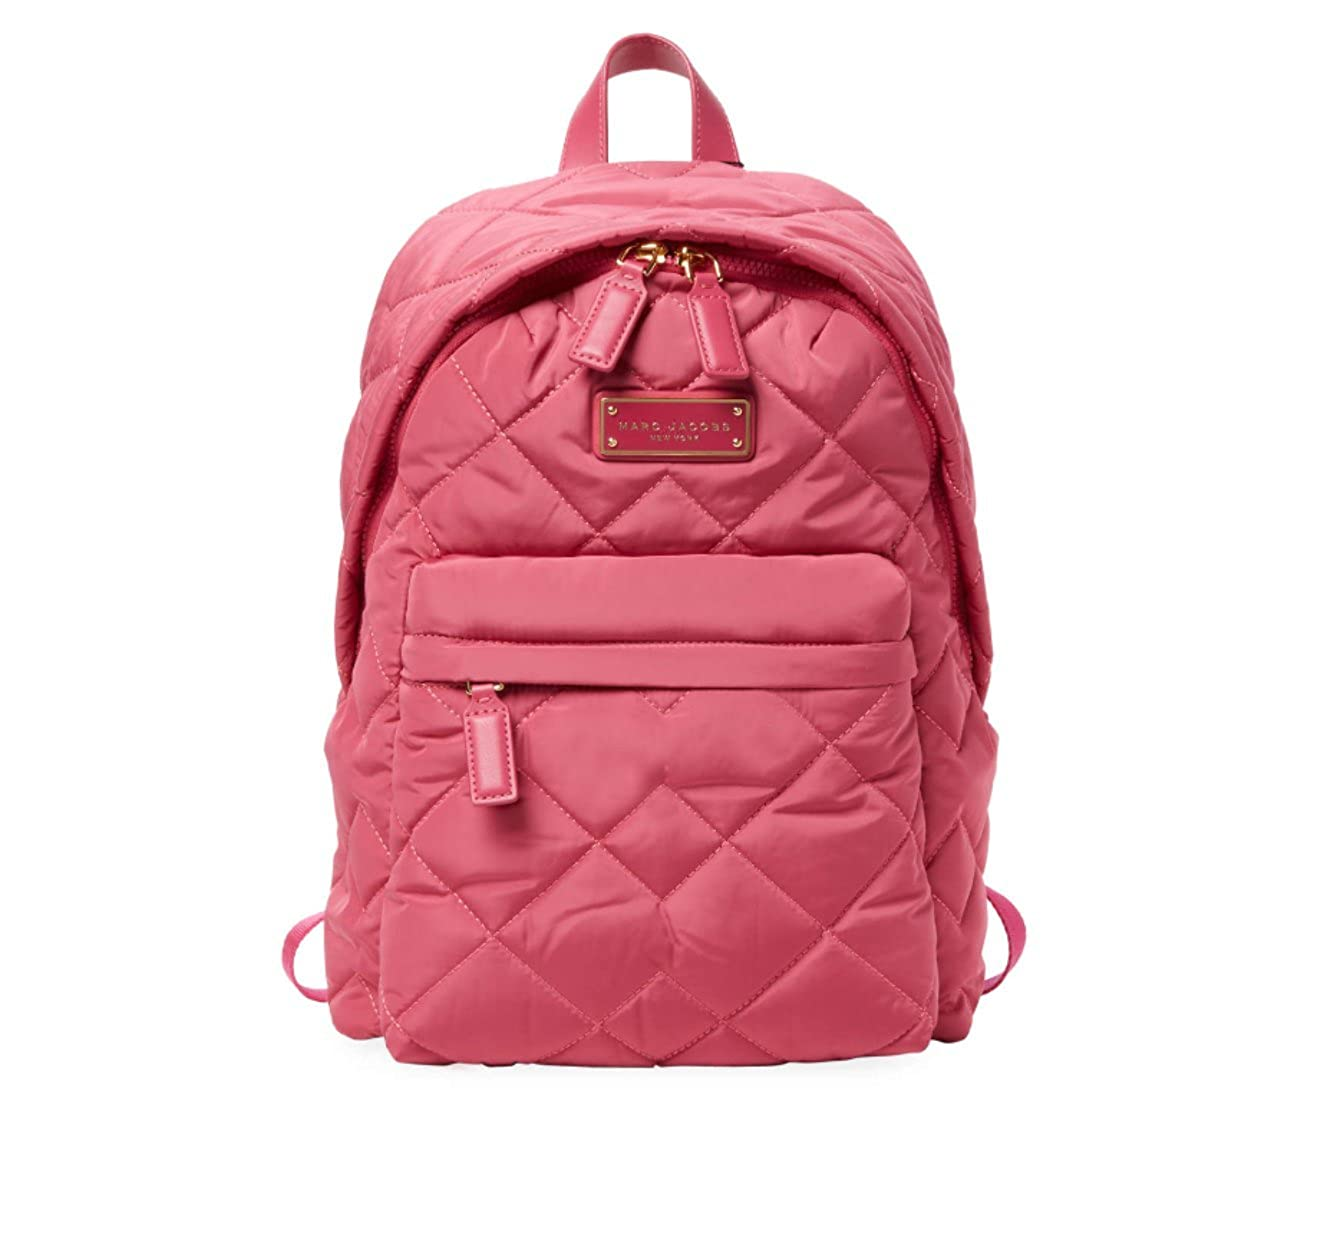 Marc by Marc Jacobs レディース  ベゴニア B07D6752ZN